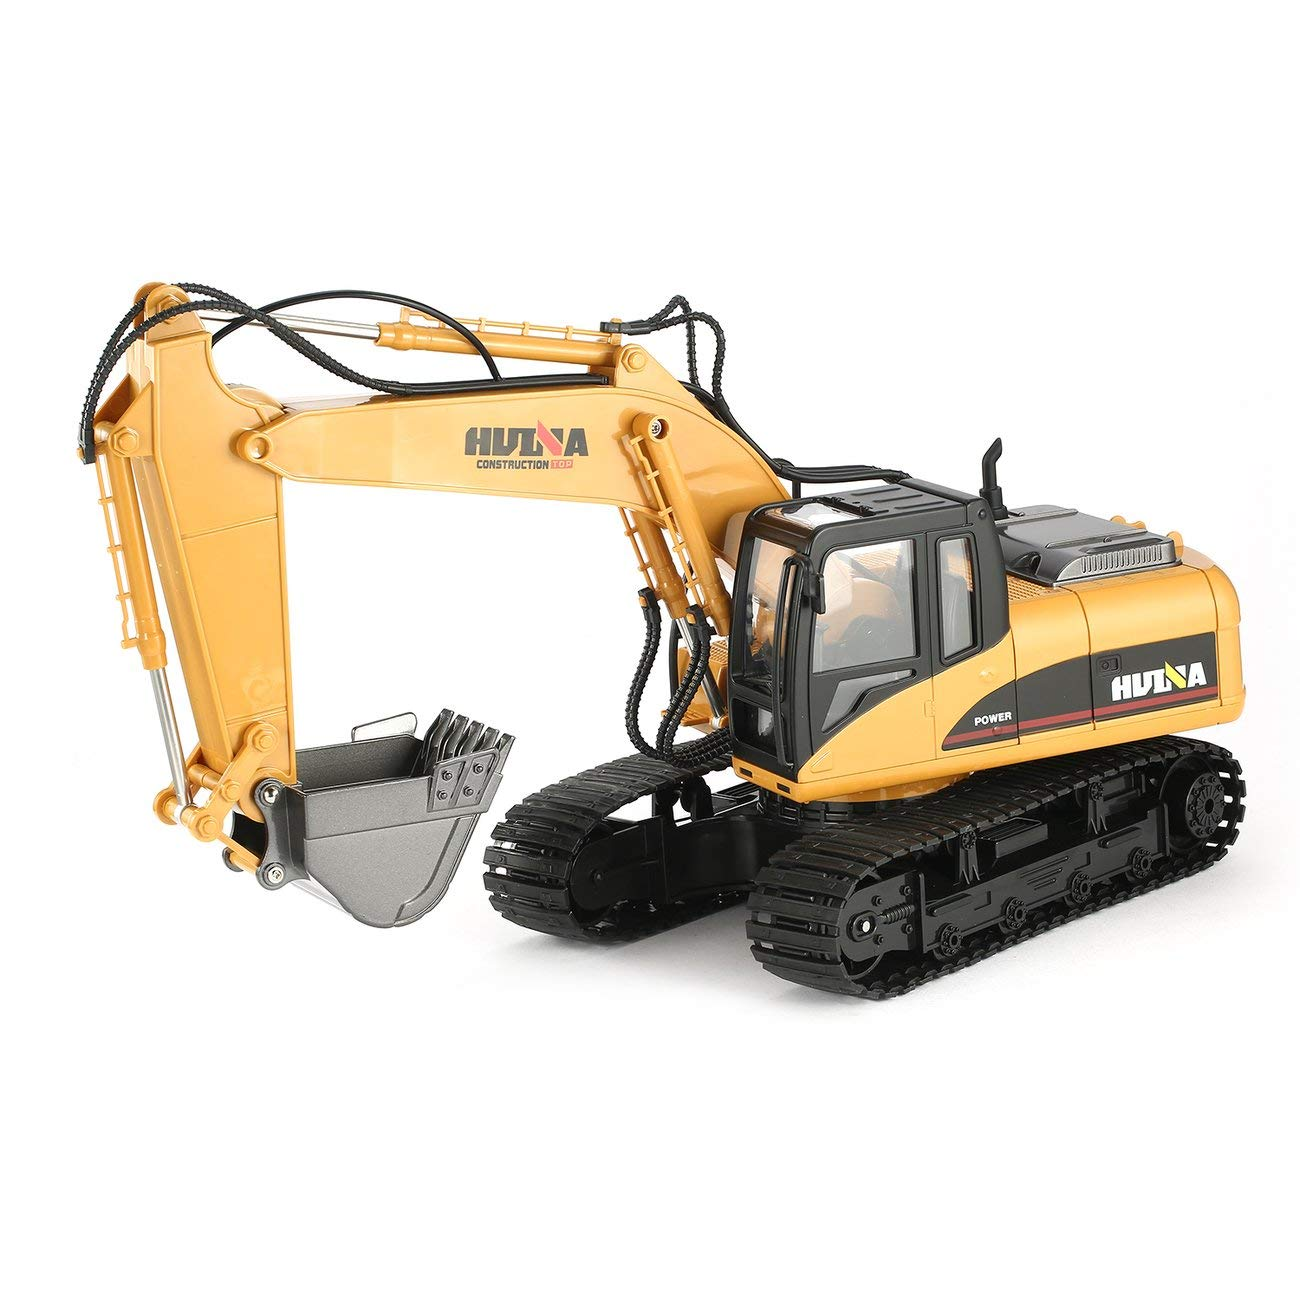 HUINA 1550 1/14 2.4G 15CH RC Alloy Excavator Truck Construction Vehicle Toy Jiobapiongxin